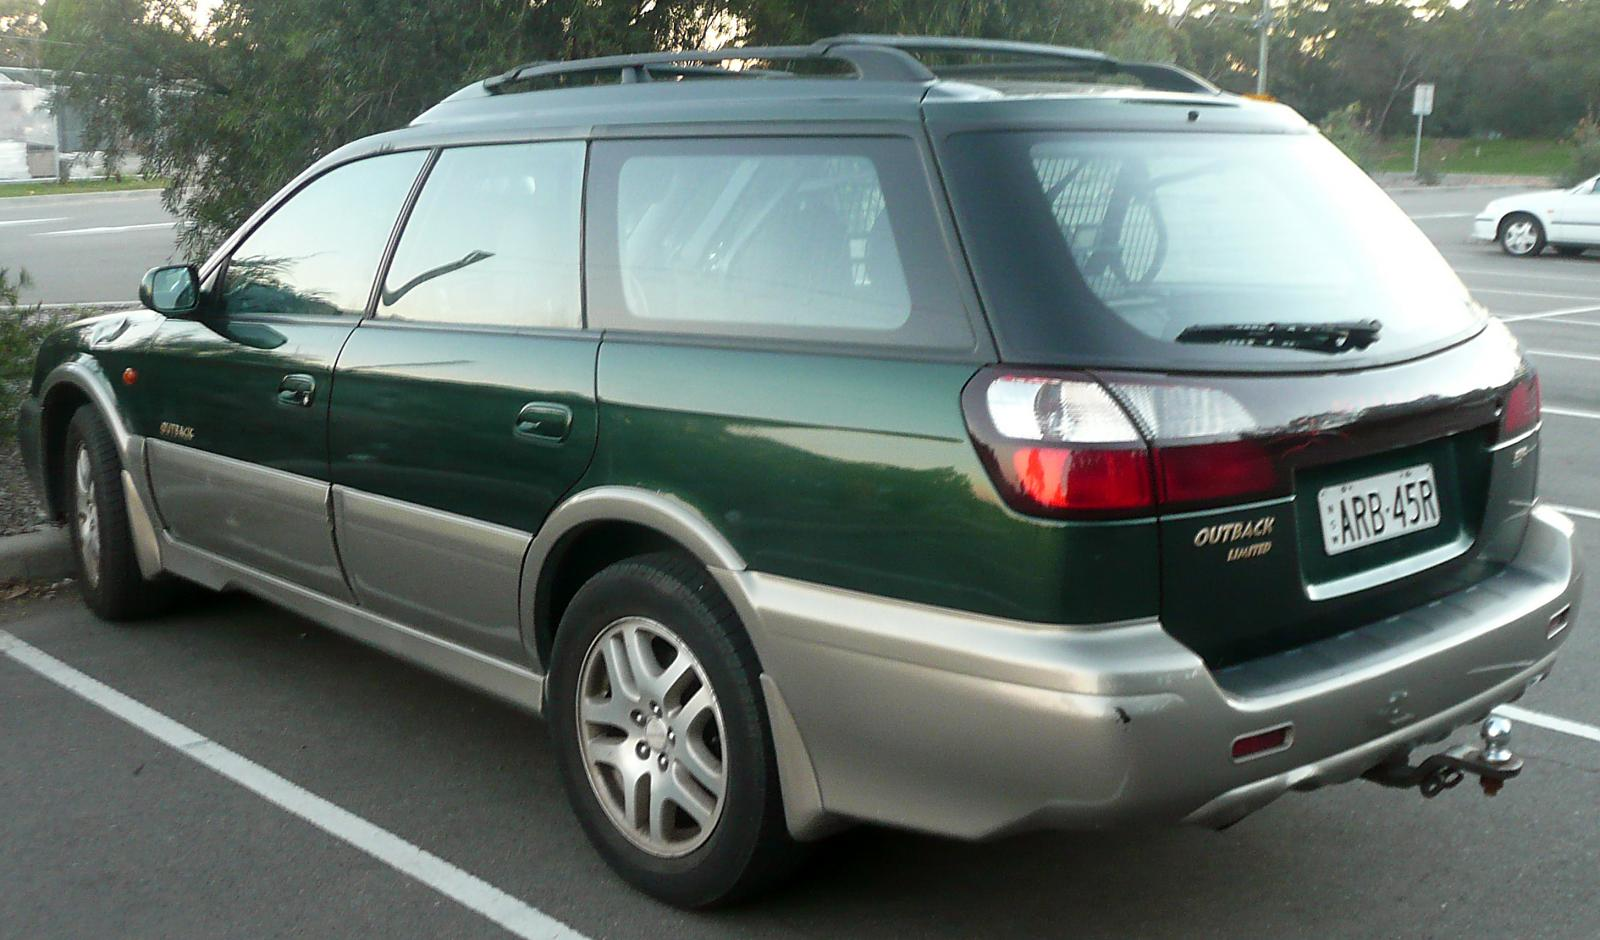 2003 subaru outback wagon green images hd cars wallpaper 2003 subaru outback wagon green choice image hd cars wallpaper 2003 subaru outback wagon green images vanachro Image collections